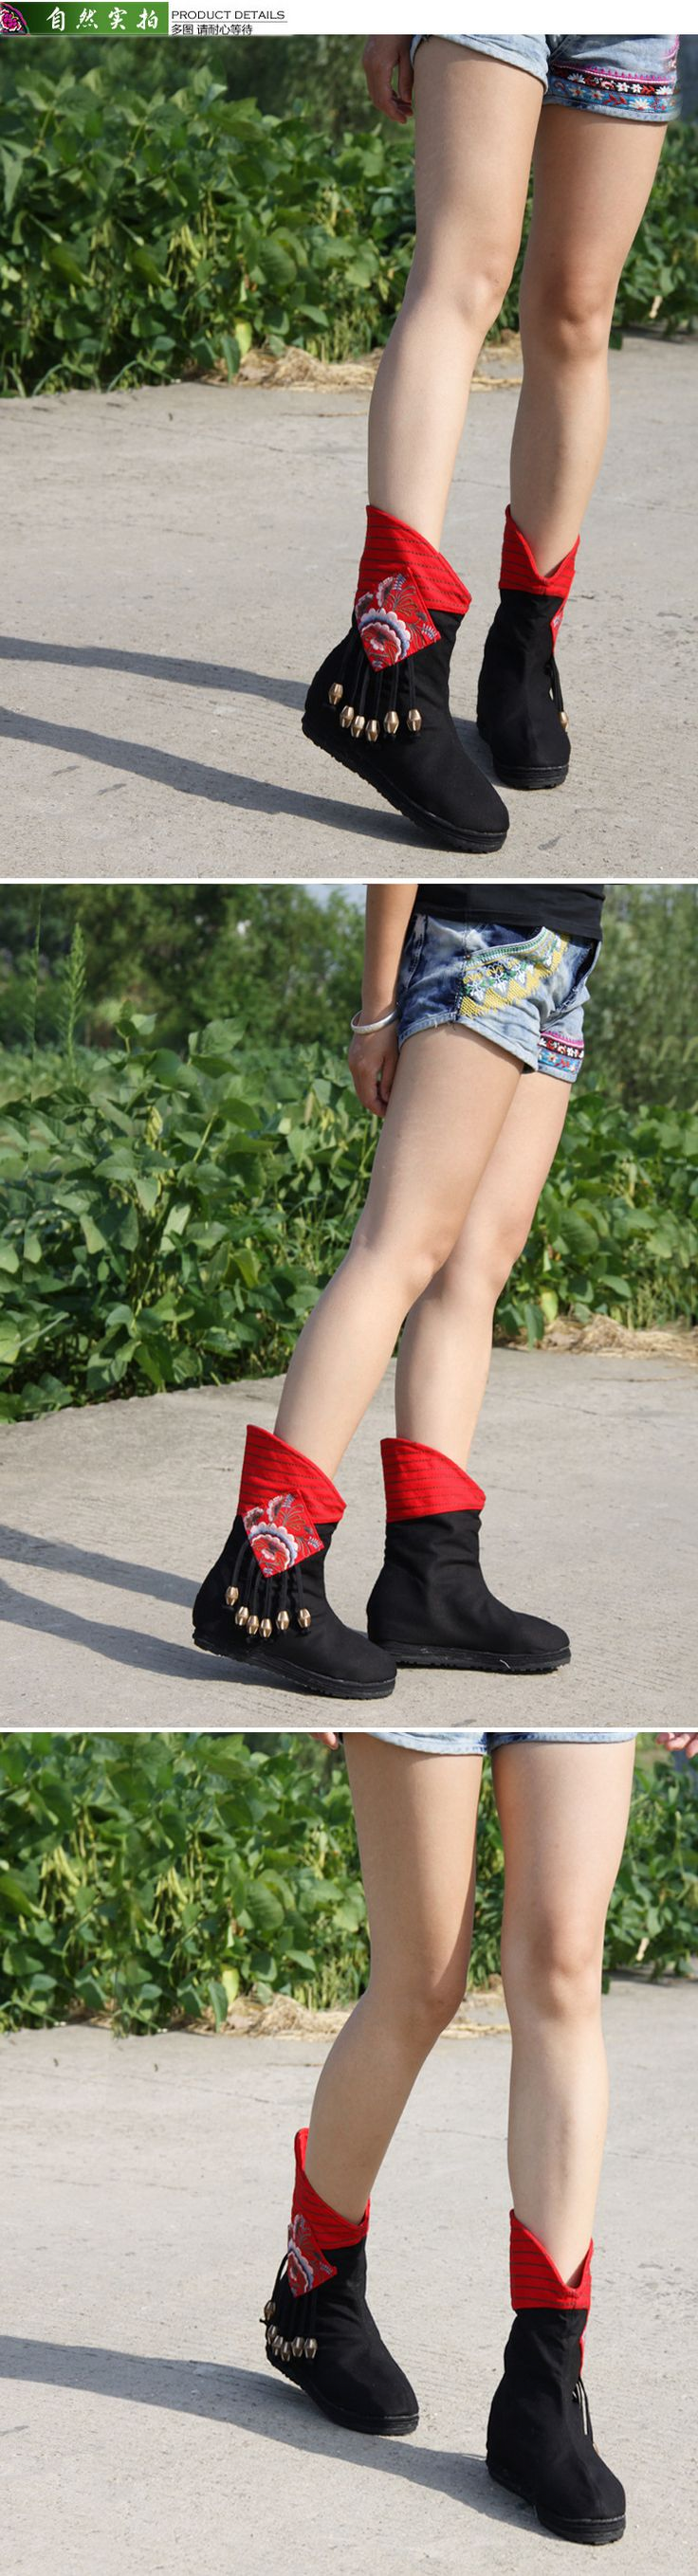 Plate forme Fringe Bottes Femmes Automne Hiver Vintage Bottes Slip on Chaussures Toile Chaussures Appartements Occasionnels Chaussures dans Femmes de Bottes de Chaussures sur AliExpress.com   Alibaba Group